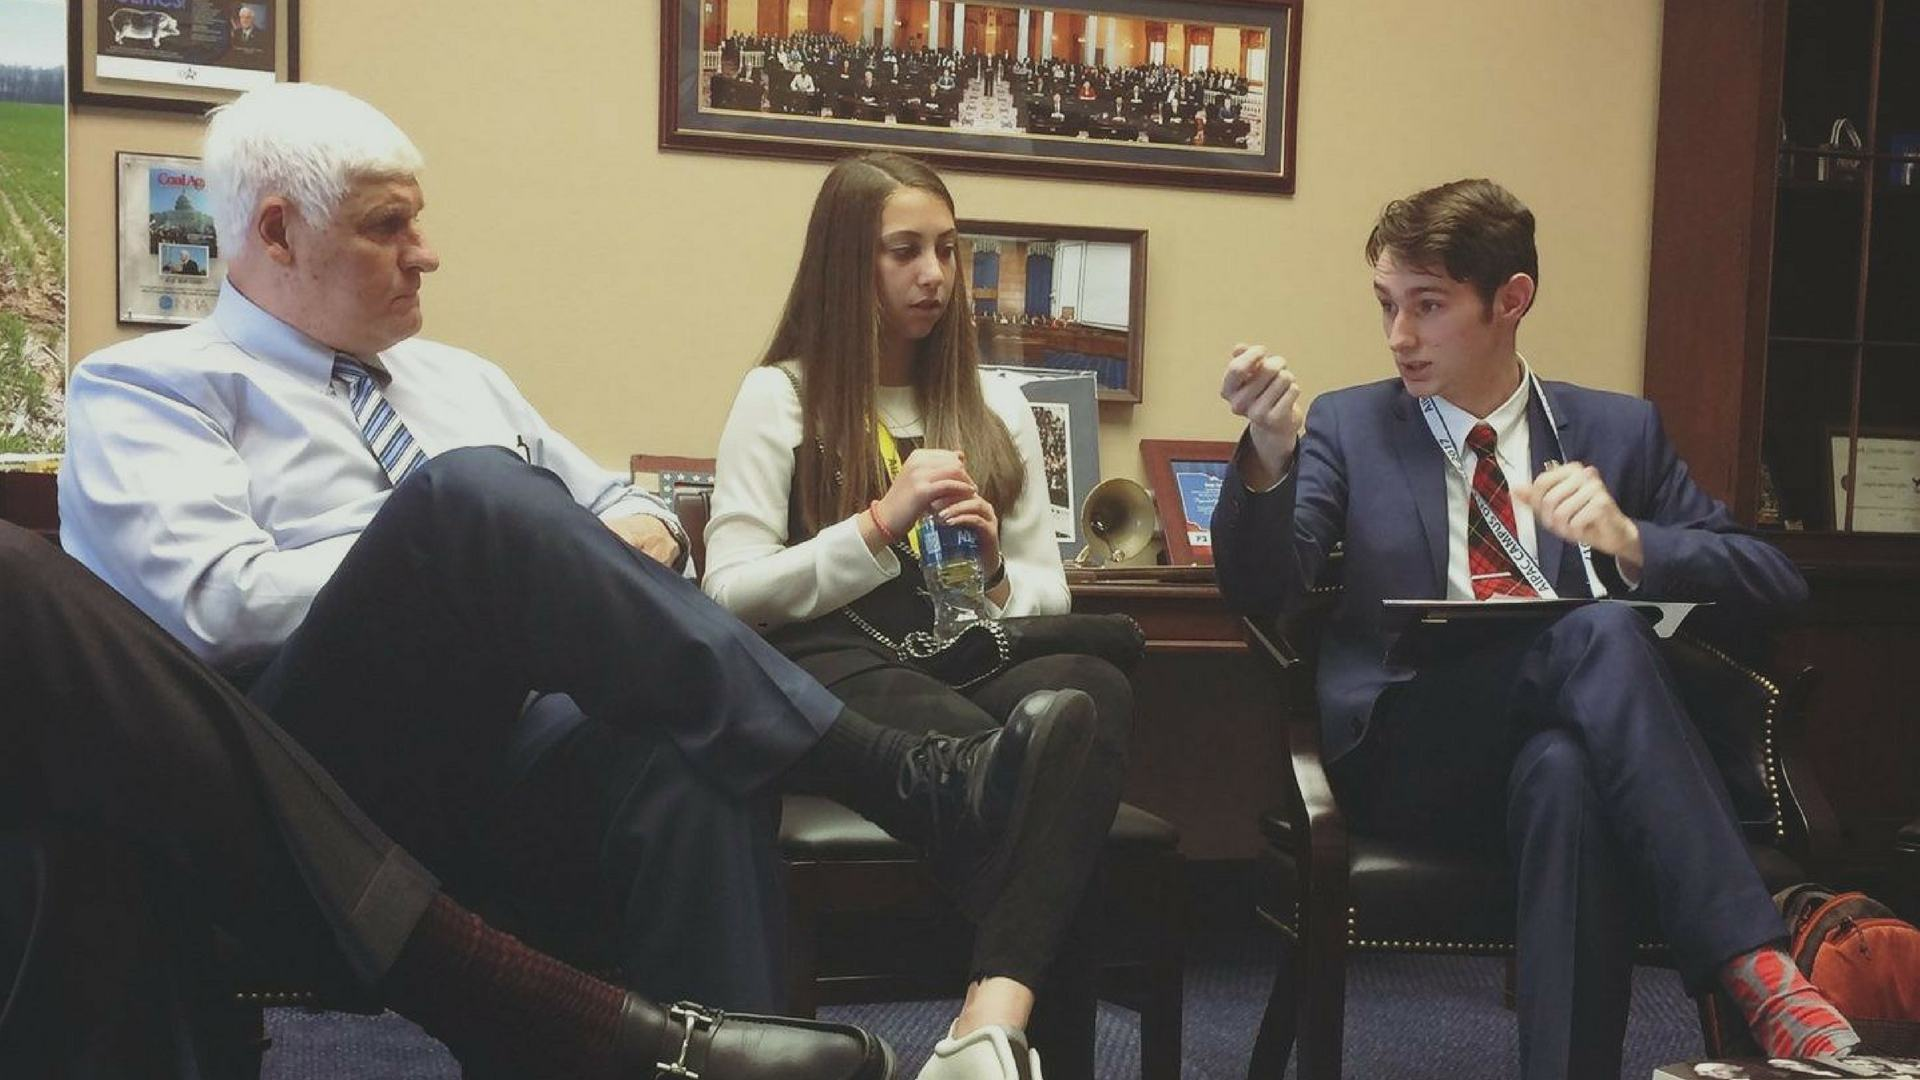 Tyler MacQueen Speaks with Congressman Bob Gibbs about the BDS movement against the State of Israel on college campuses, as well as discussing the European Union and the United Nations.